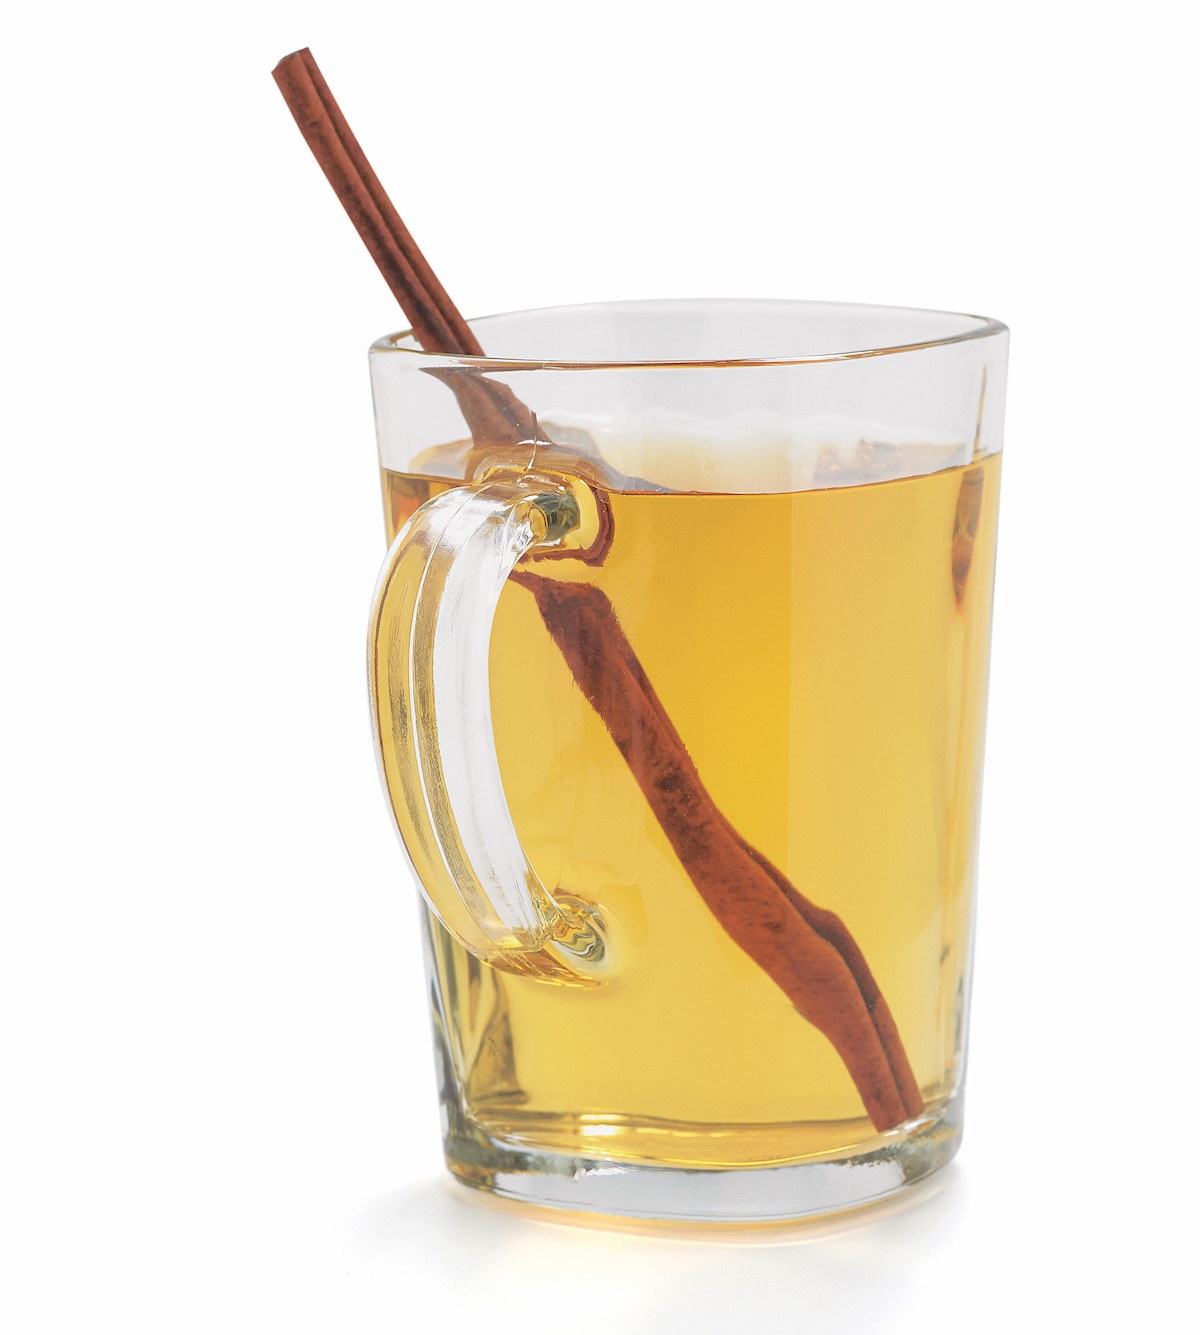 Glass Mug of Cider with a Cinnamon Stick